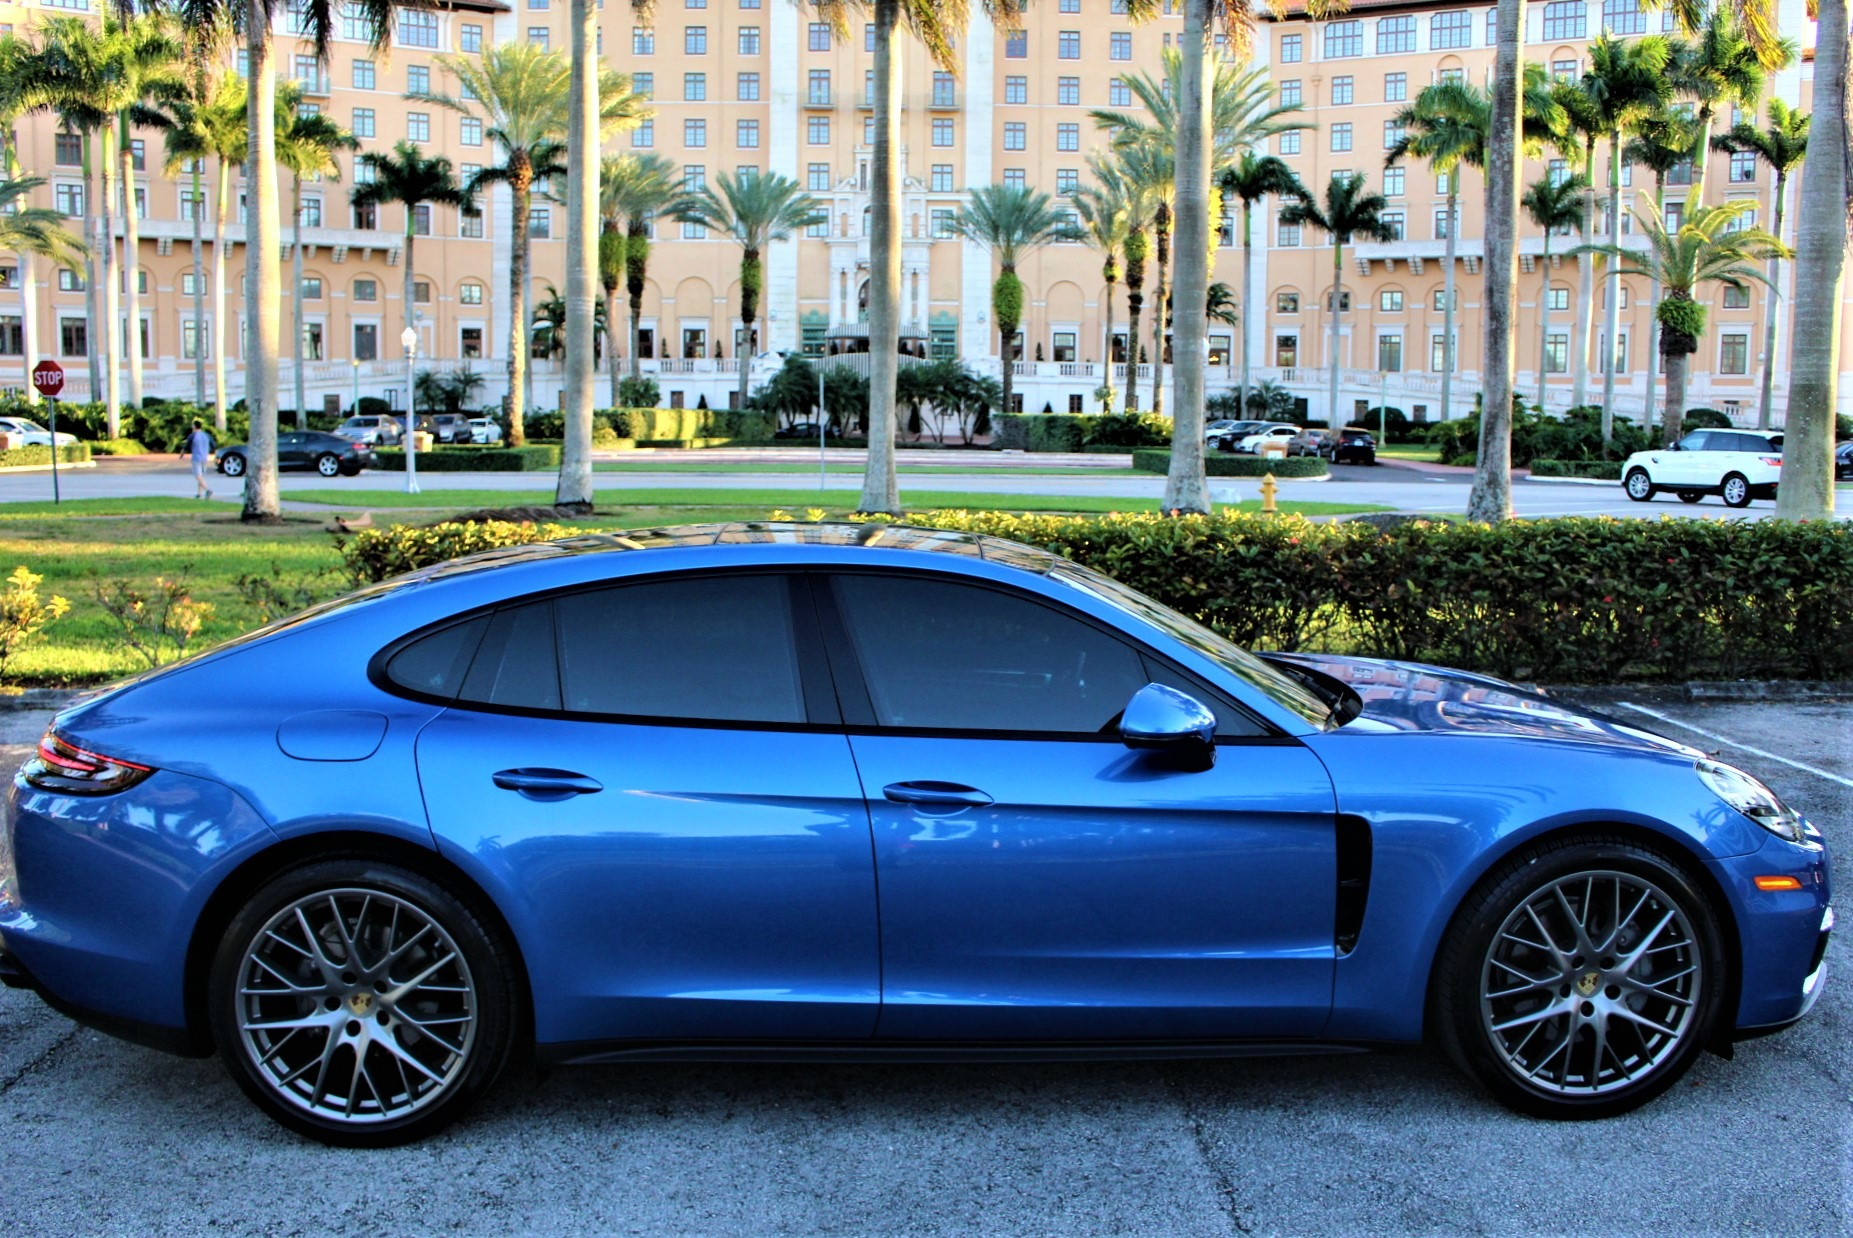 Used 2018 Porsche Panamera 4S for sale $83,850 at The Gables Sports Cars in Miami FL 33146 3